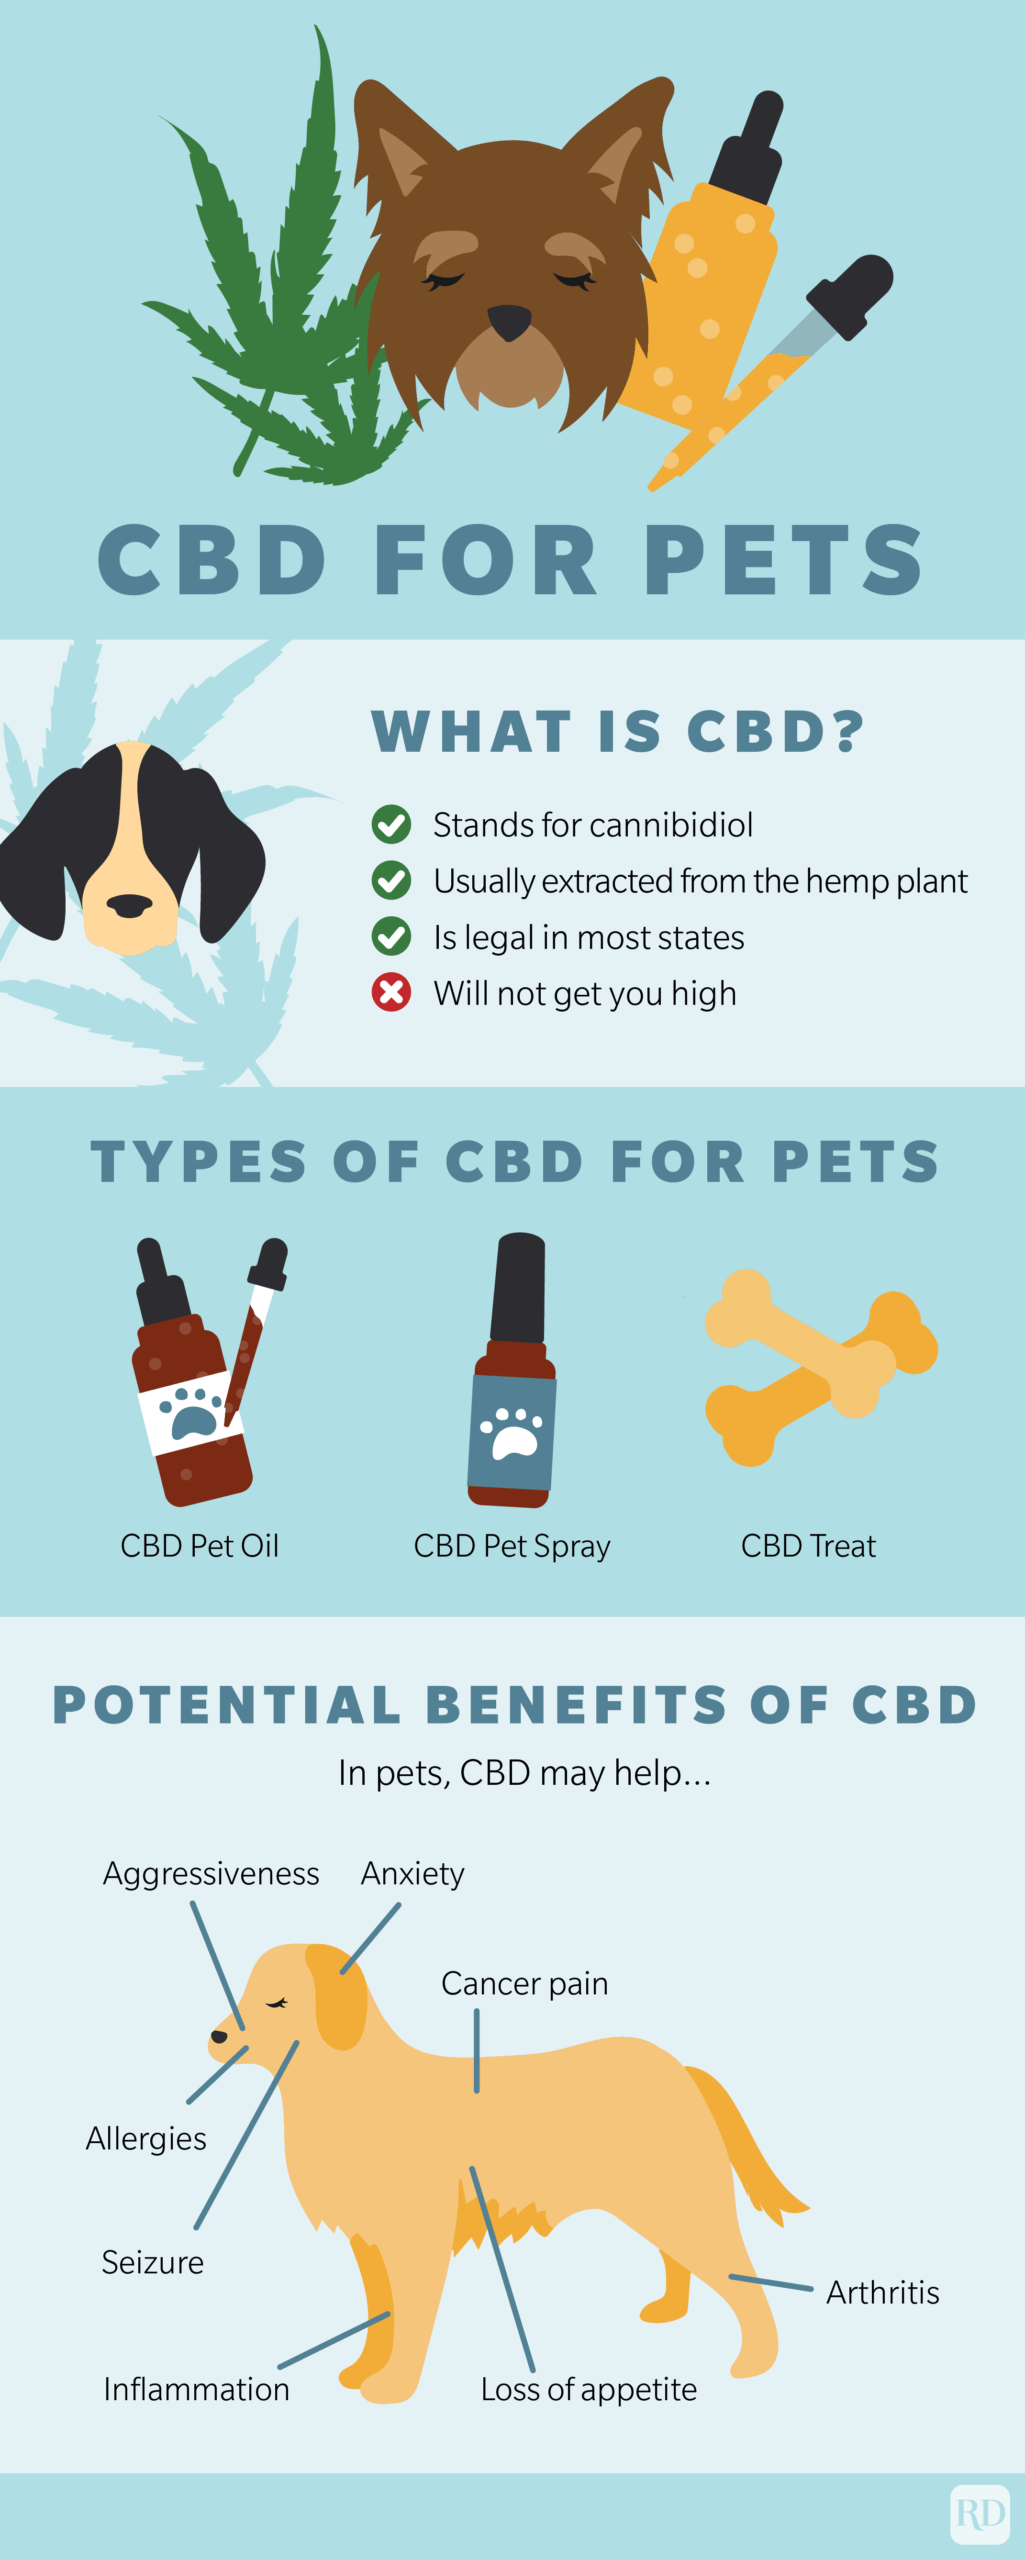 Cbd for Pets Infographic with sections about What is CBD?, Types of CBD for Pets, and Potential Benefits of CBD